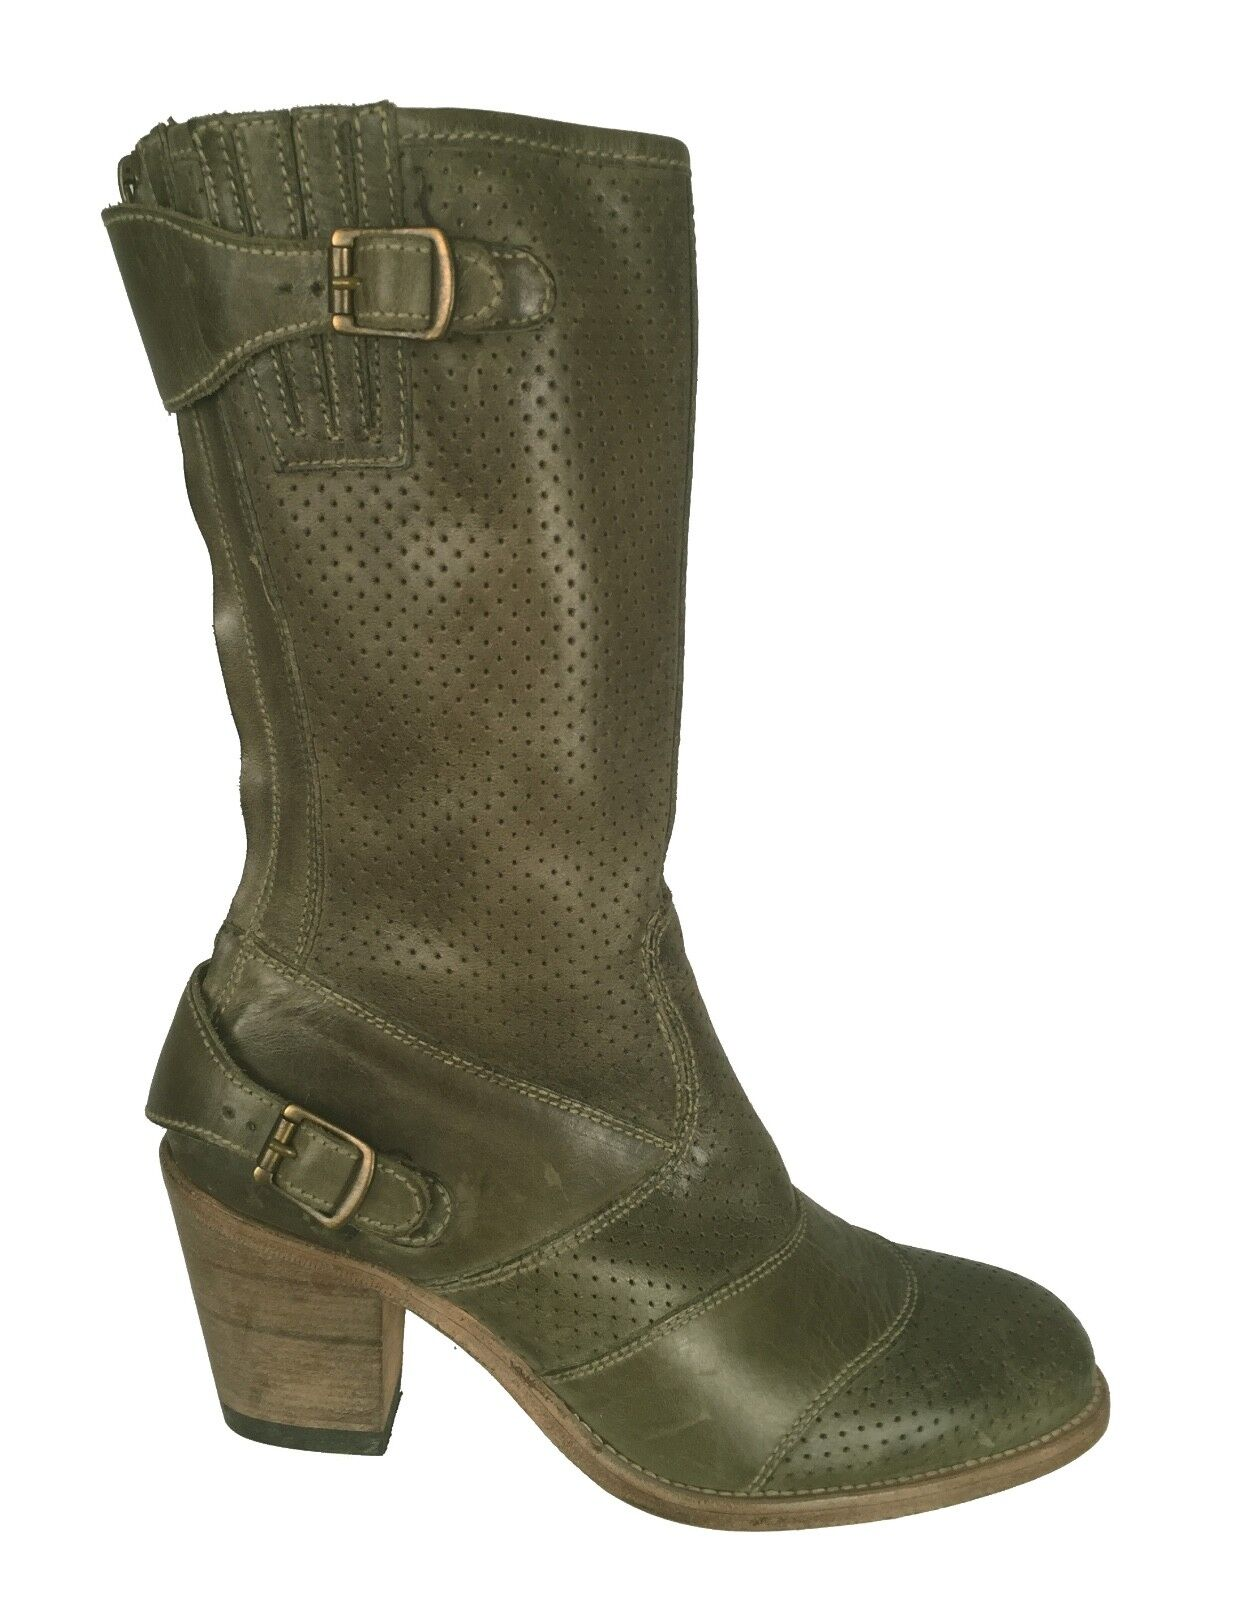 Belstaff Distressed Green Roadmaster Boots Shoes Leather Sole EU Size 39